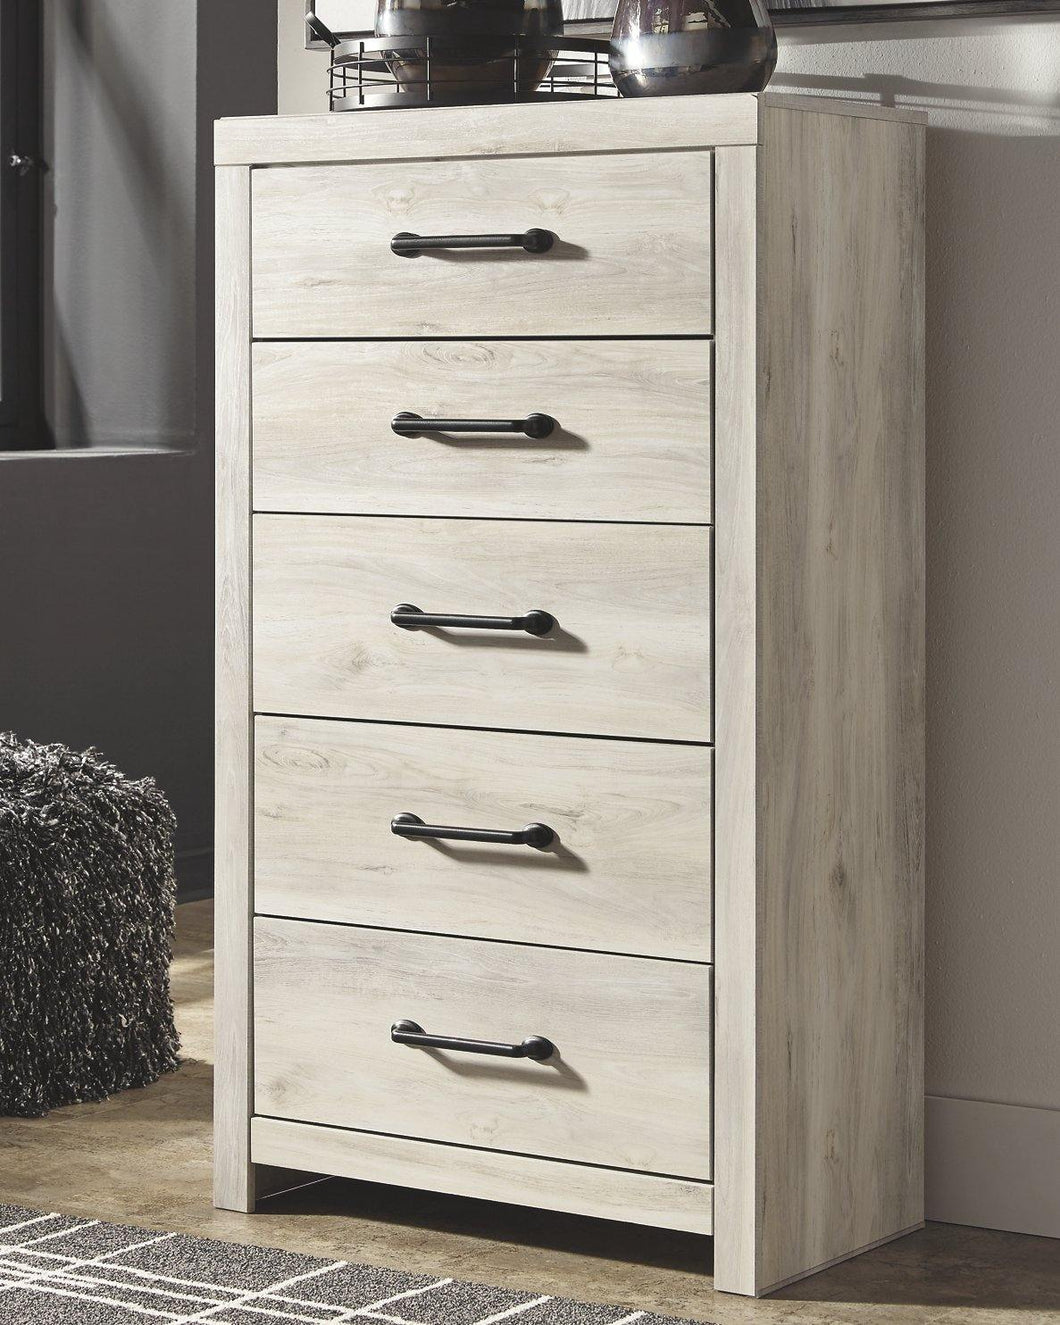 Cambeck Chest of Drawers B192-46 Girls Bedroom Furniture By Ashley Furniture from sofafair